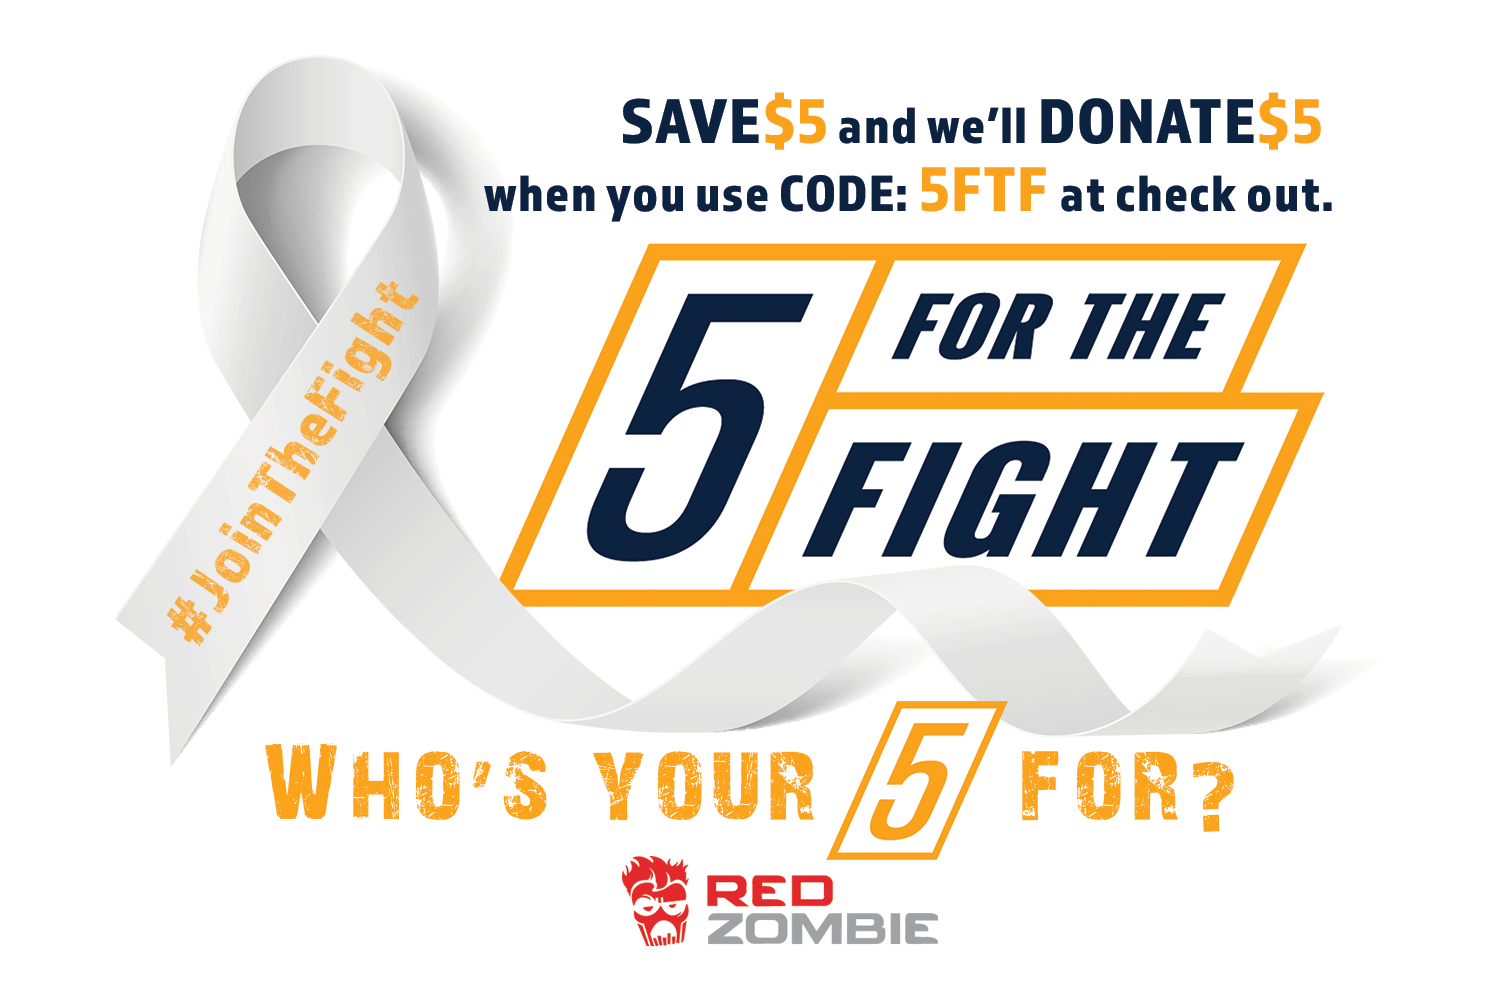 Red Zombie Cares, Giveback program to 5 For The Fight